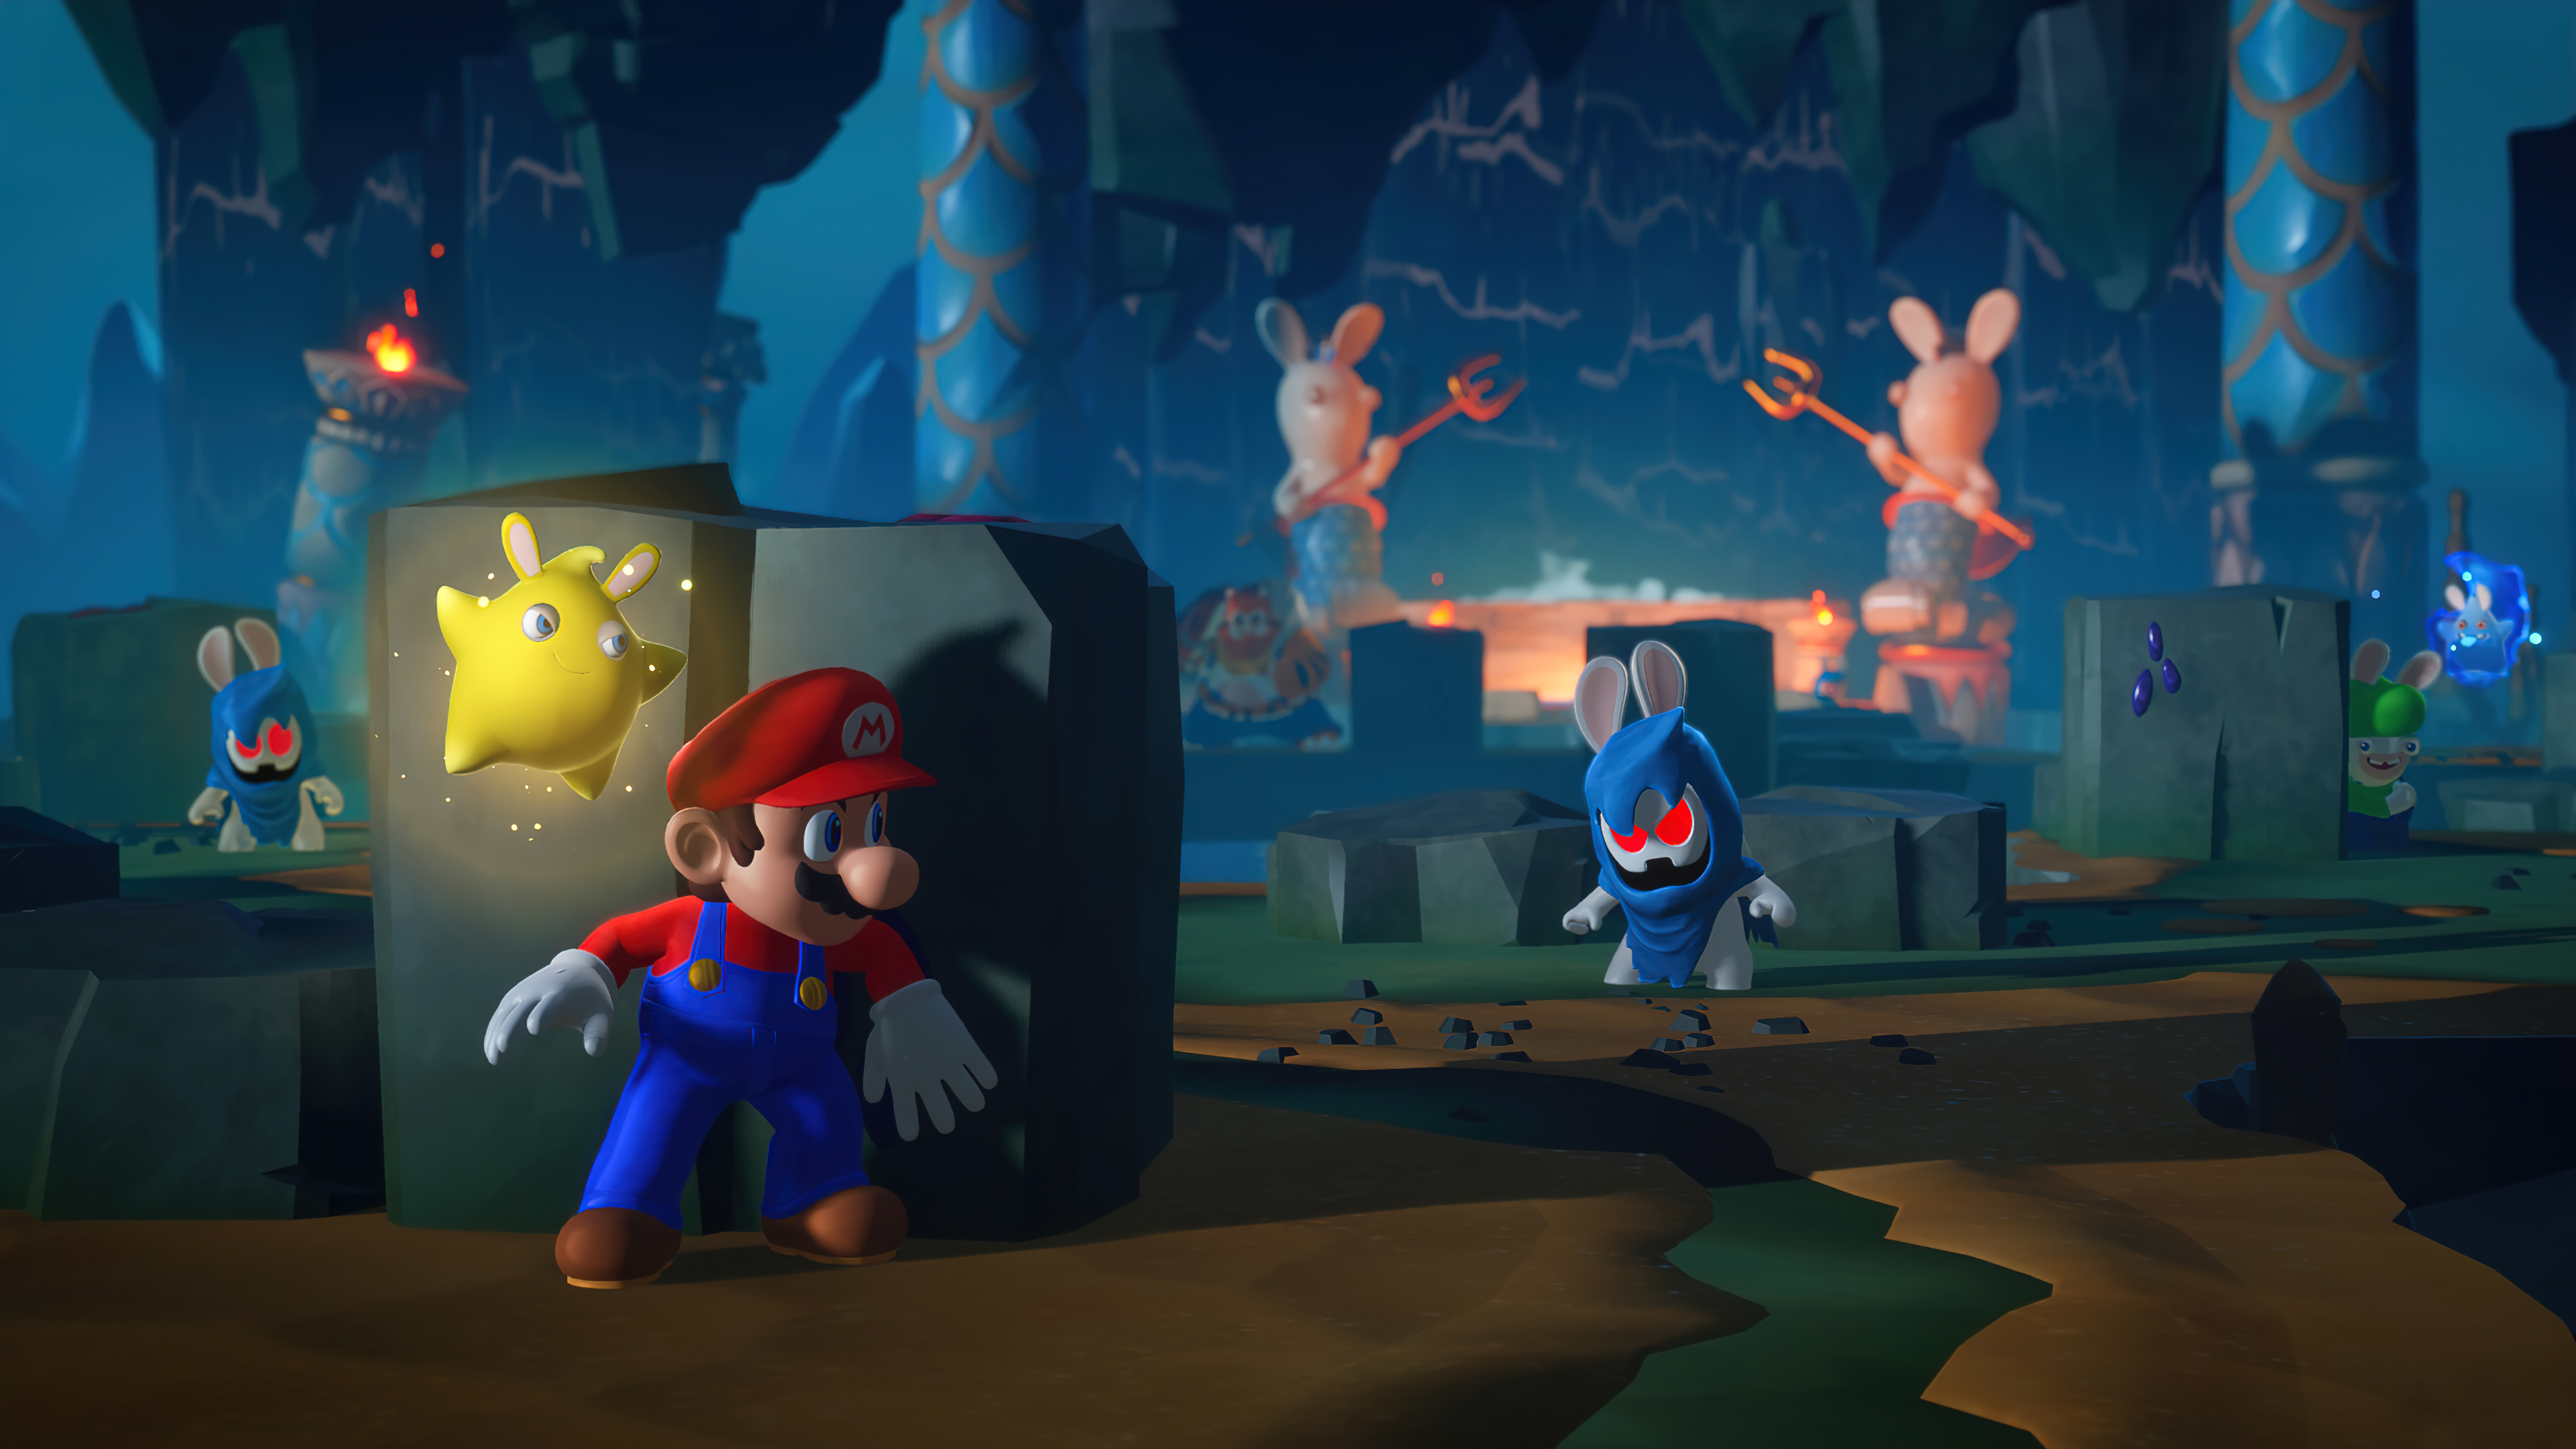 Wallpaper Mario Rabbids Sparks of Hope Game